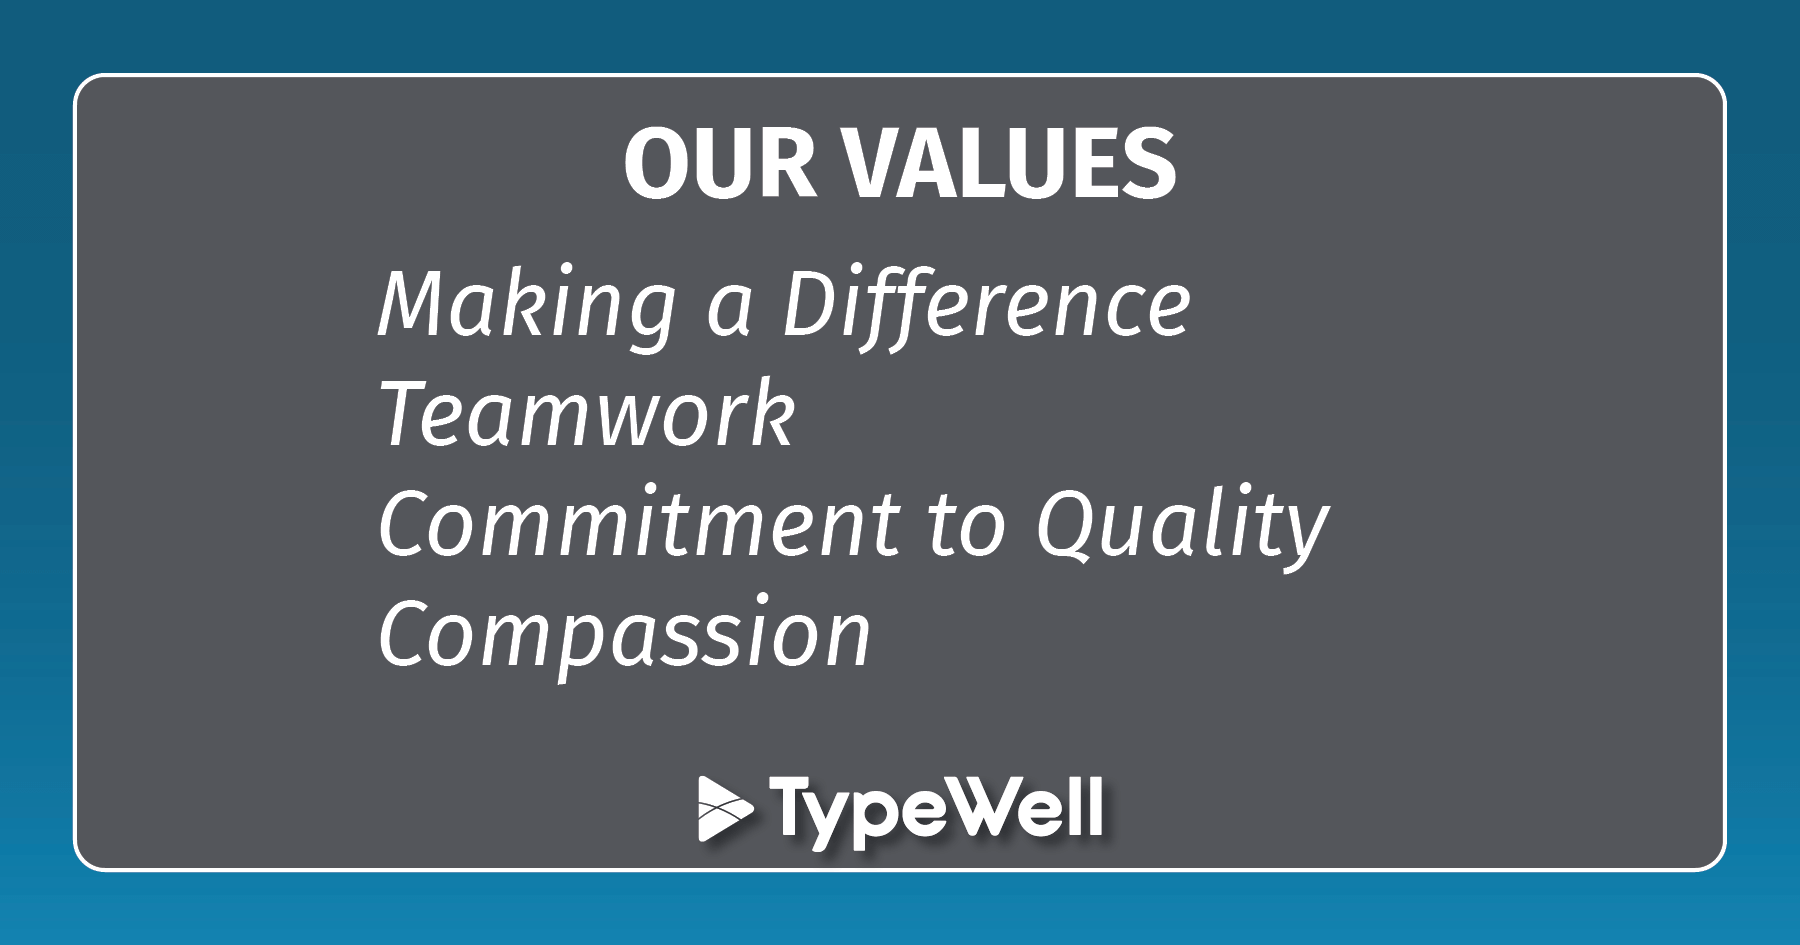 TYPEWELL VALUES: Making a Difference, Teamwork, Commitment to Quality, and Compassion